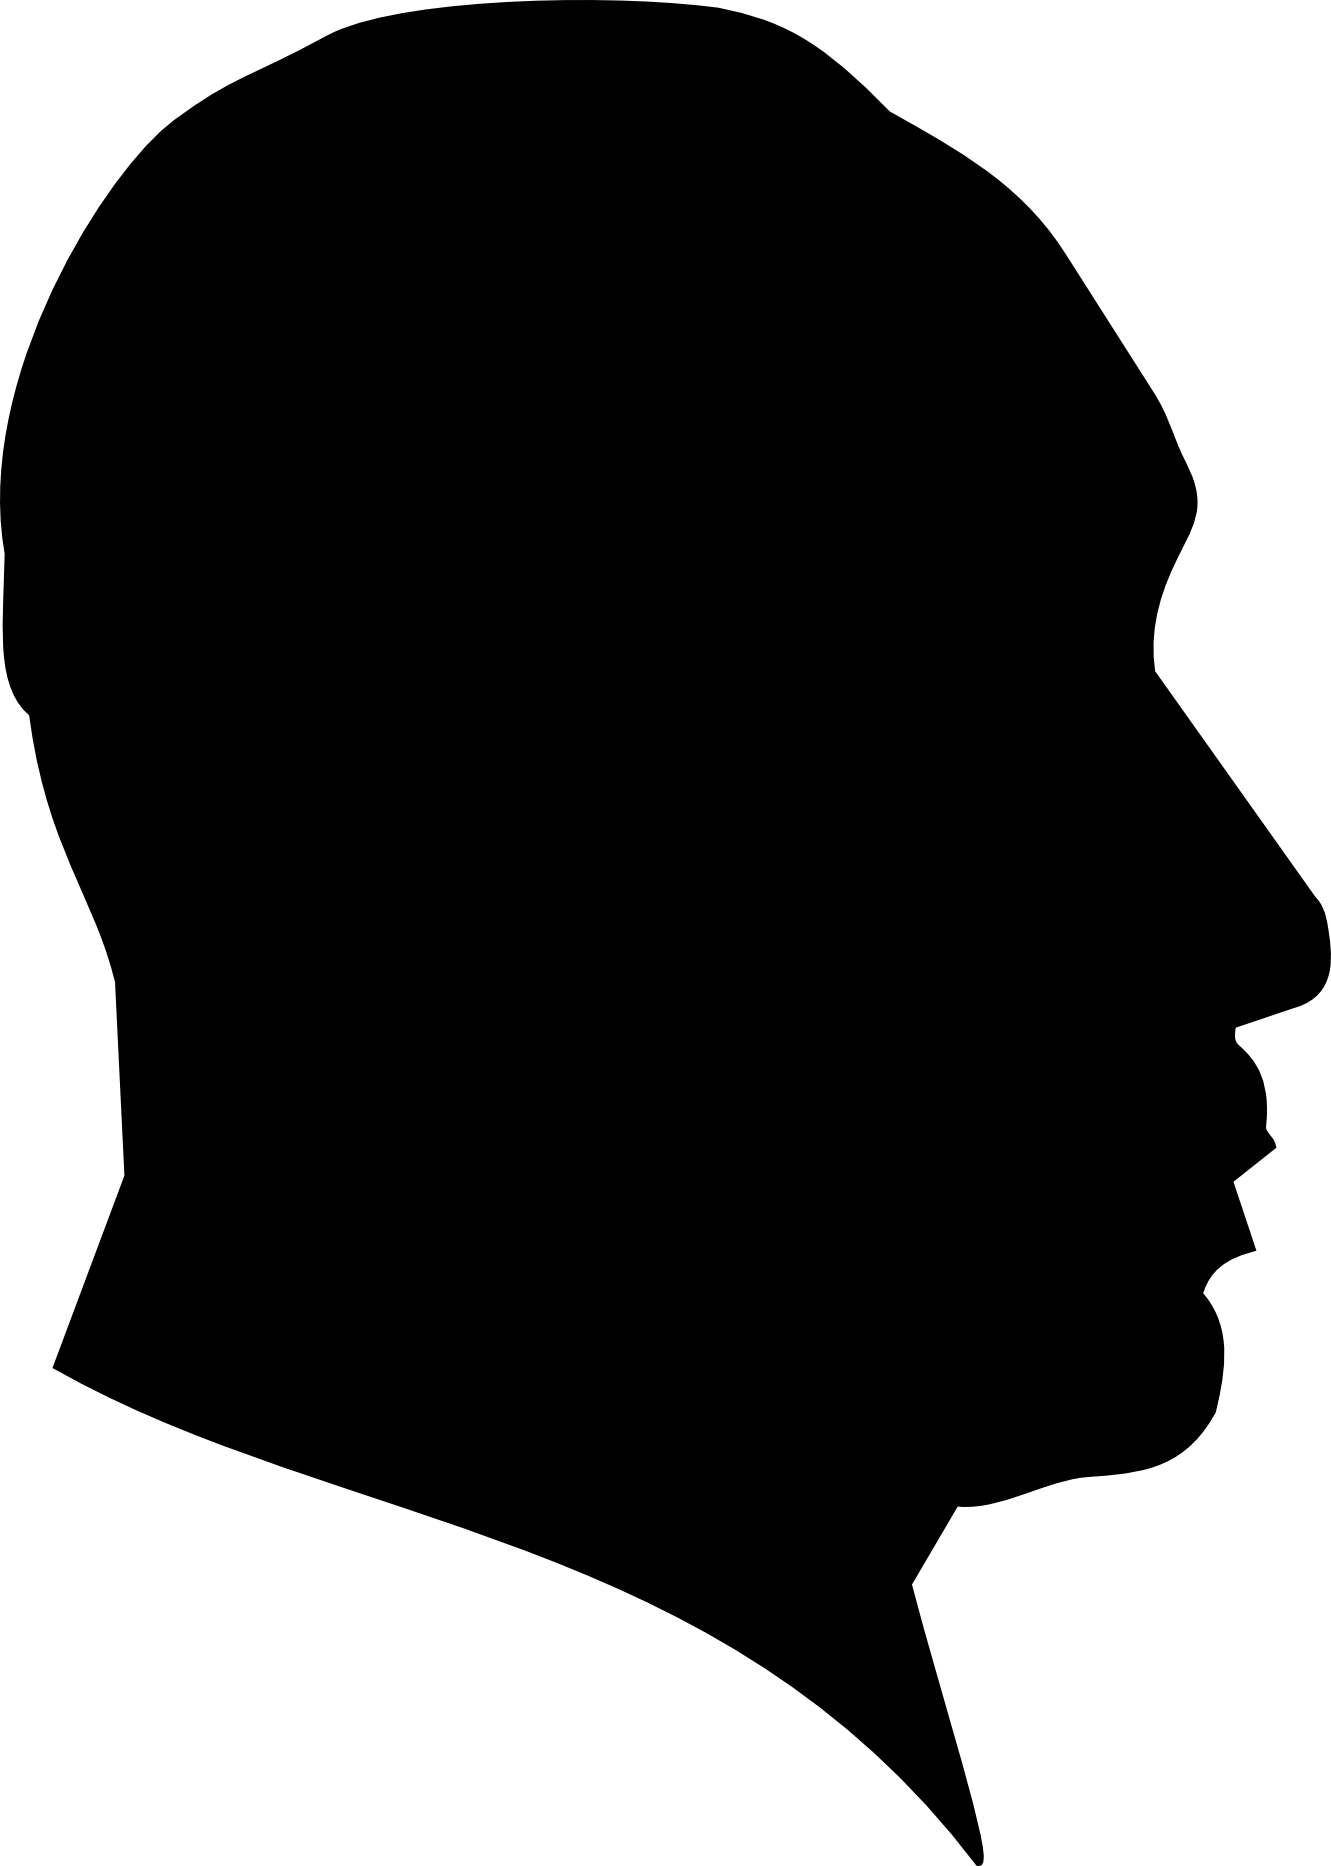 Face profile Illustrations and Clipart 45391 Face